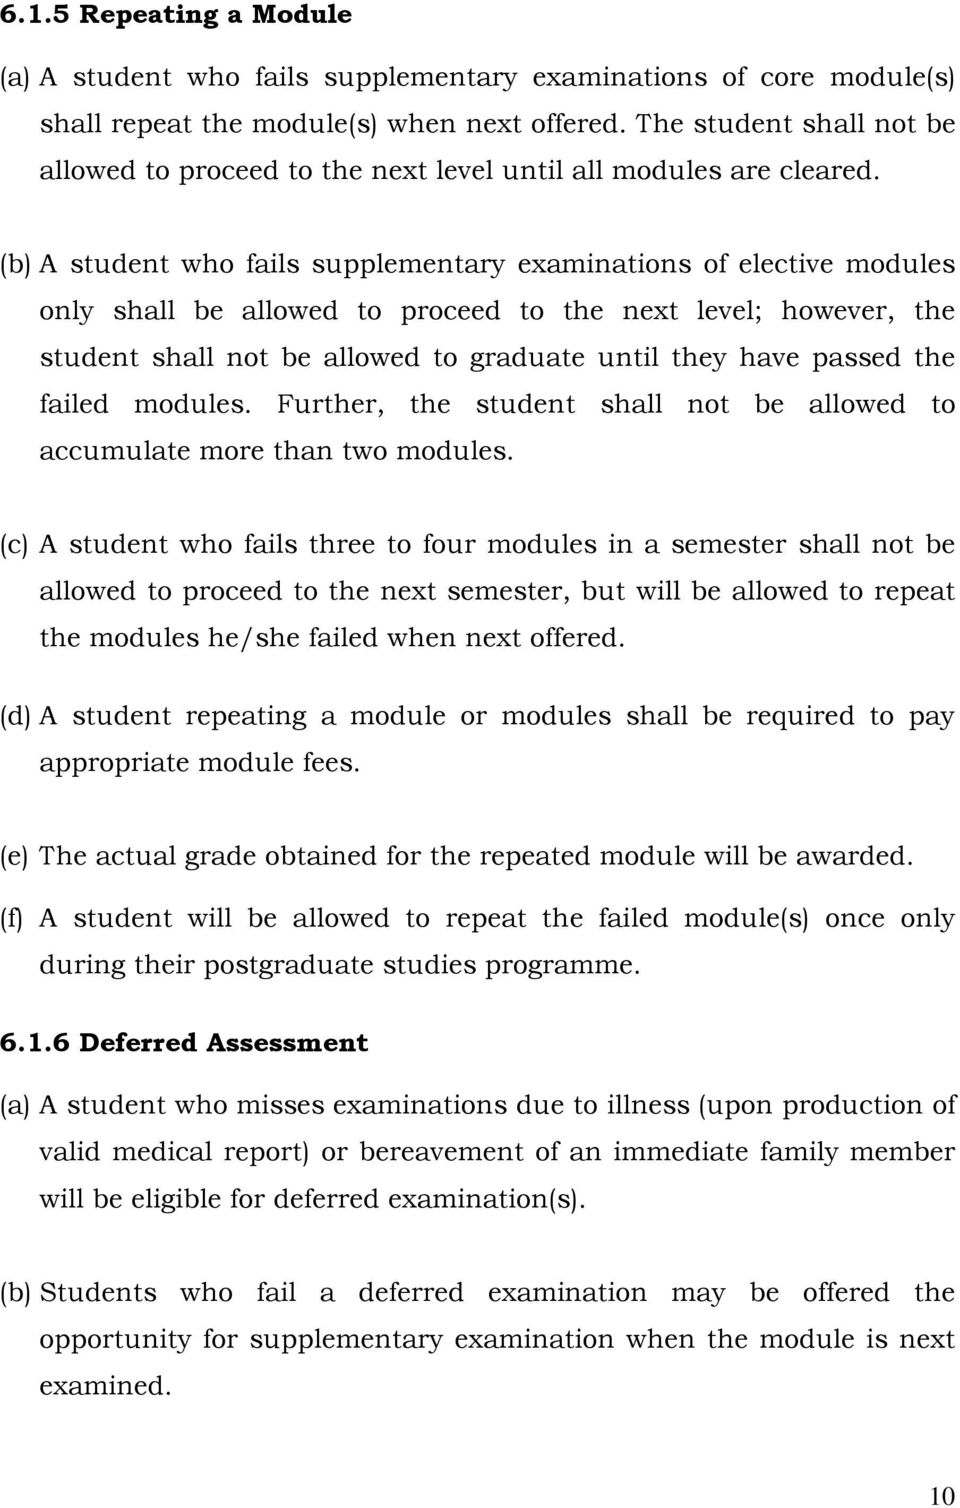 (b) A student who fails supplementary examinations of elective modules only shall be allowed to proceed to the next level; however, the student shall not be allowed to graduate until they have passed